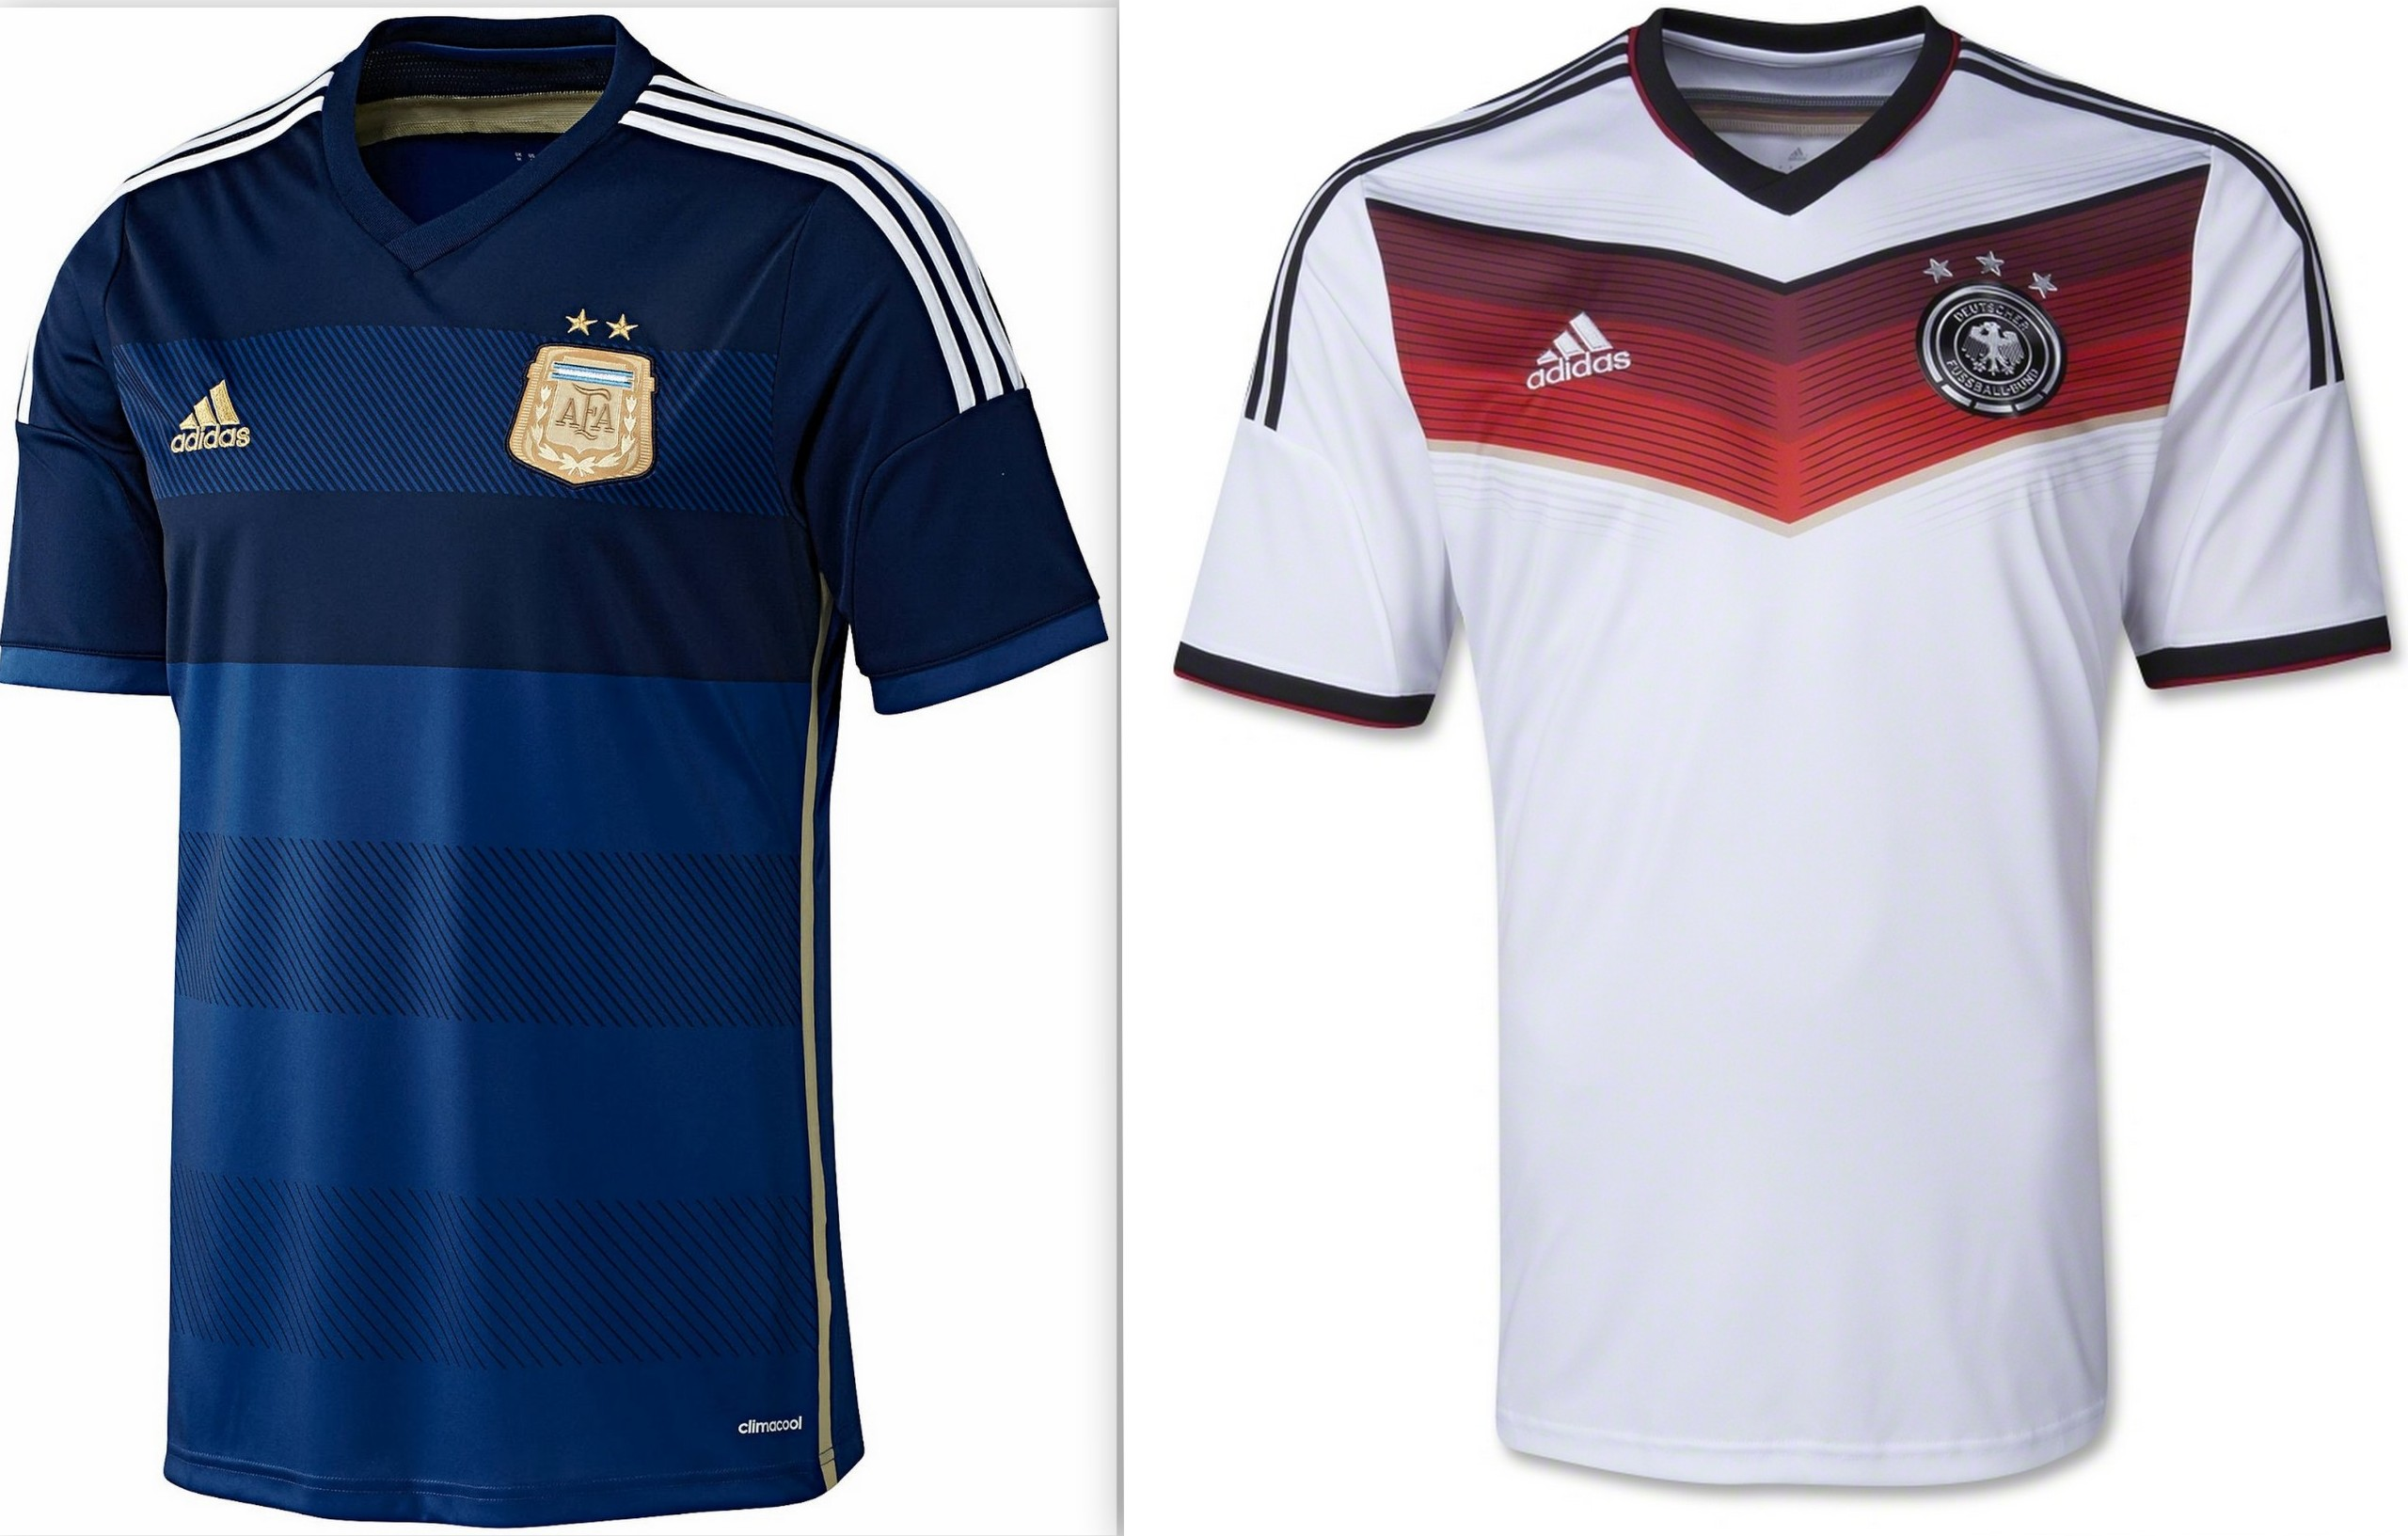 043b86671 FIFA World Cup 2014  Argentina to play for the first time in their away  blue in the finals